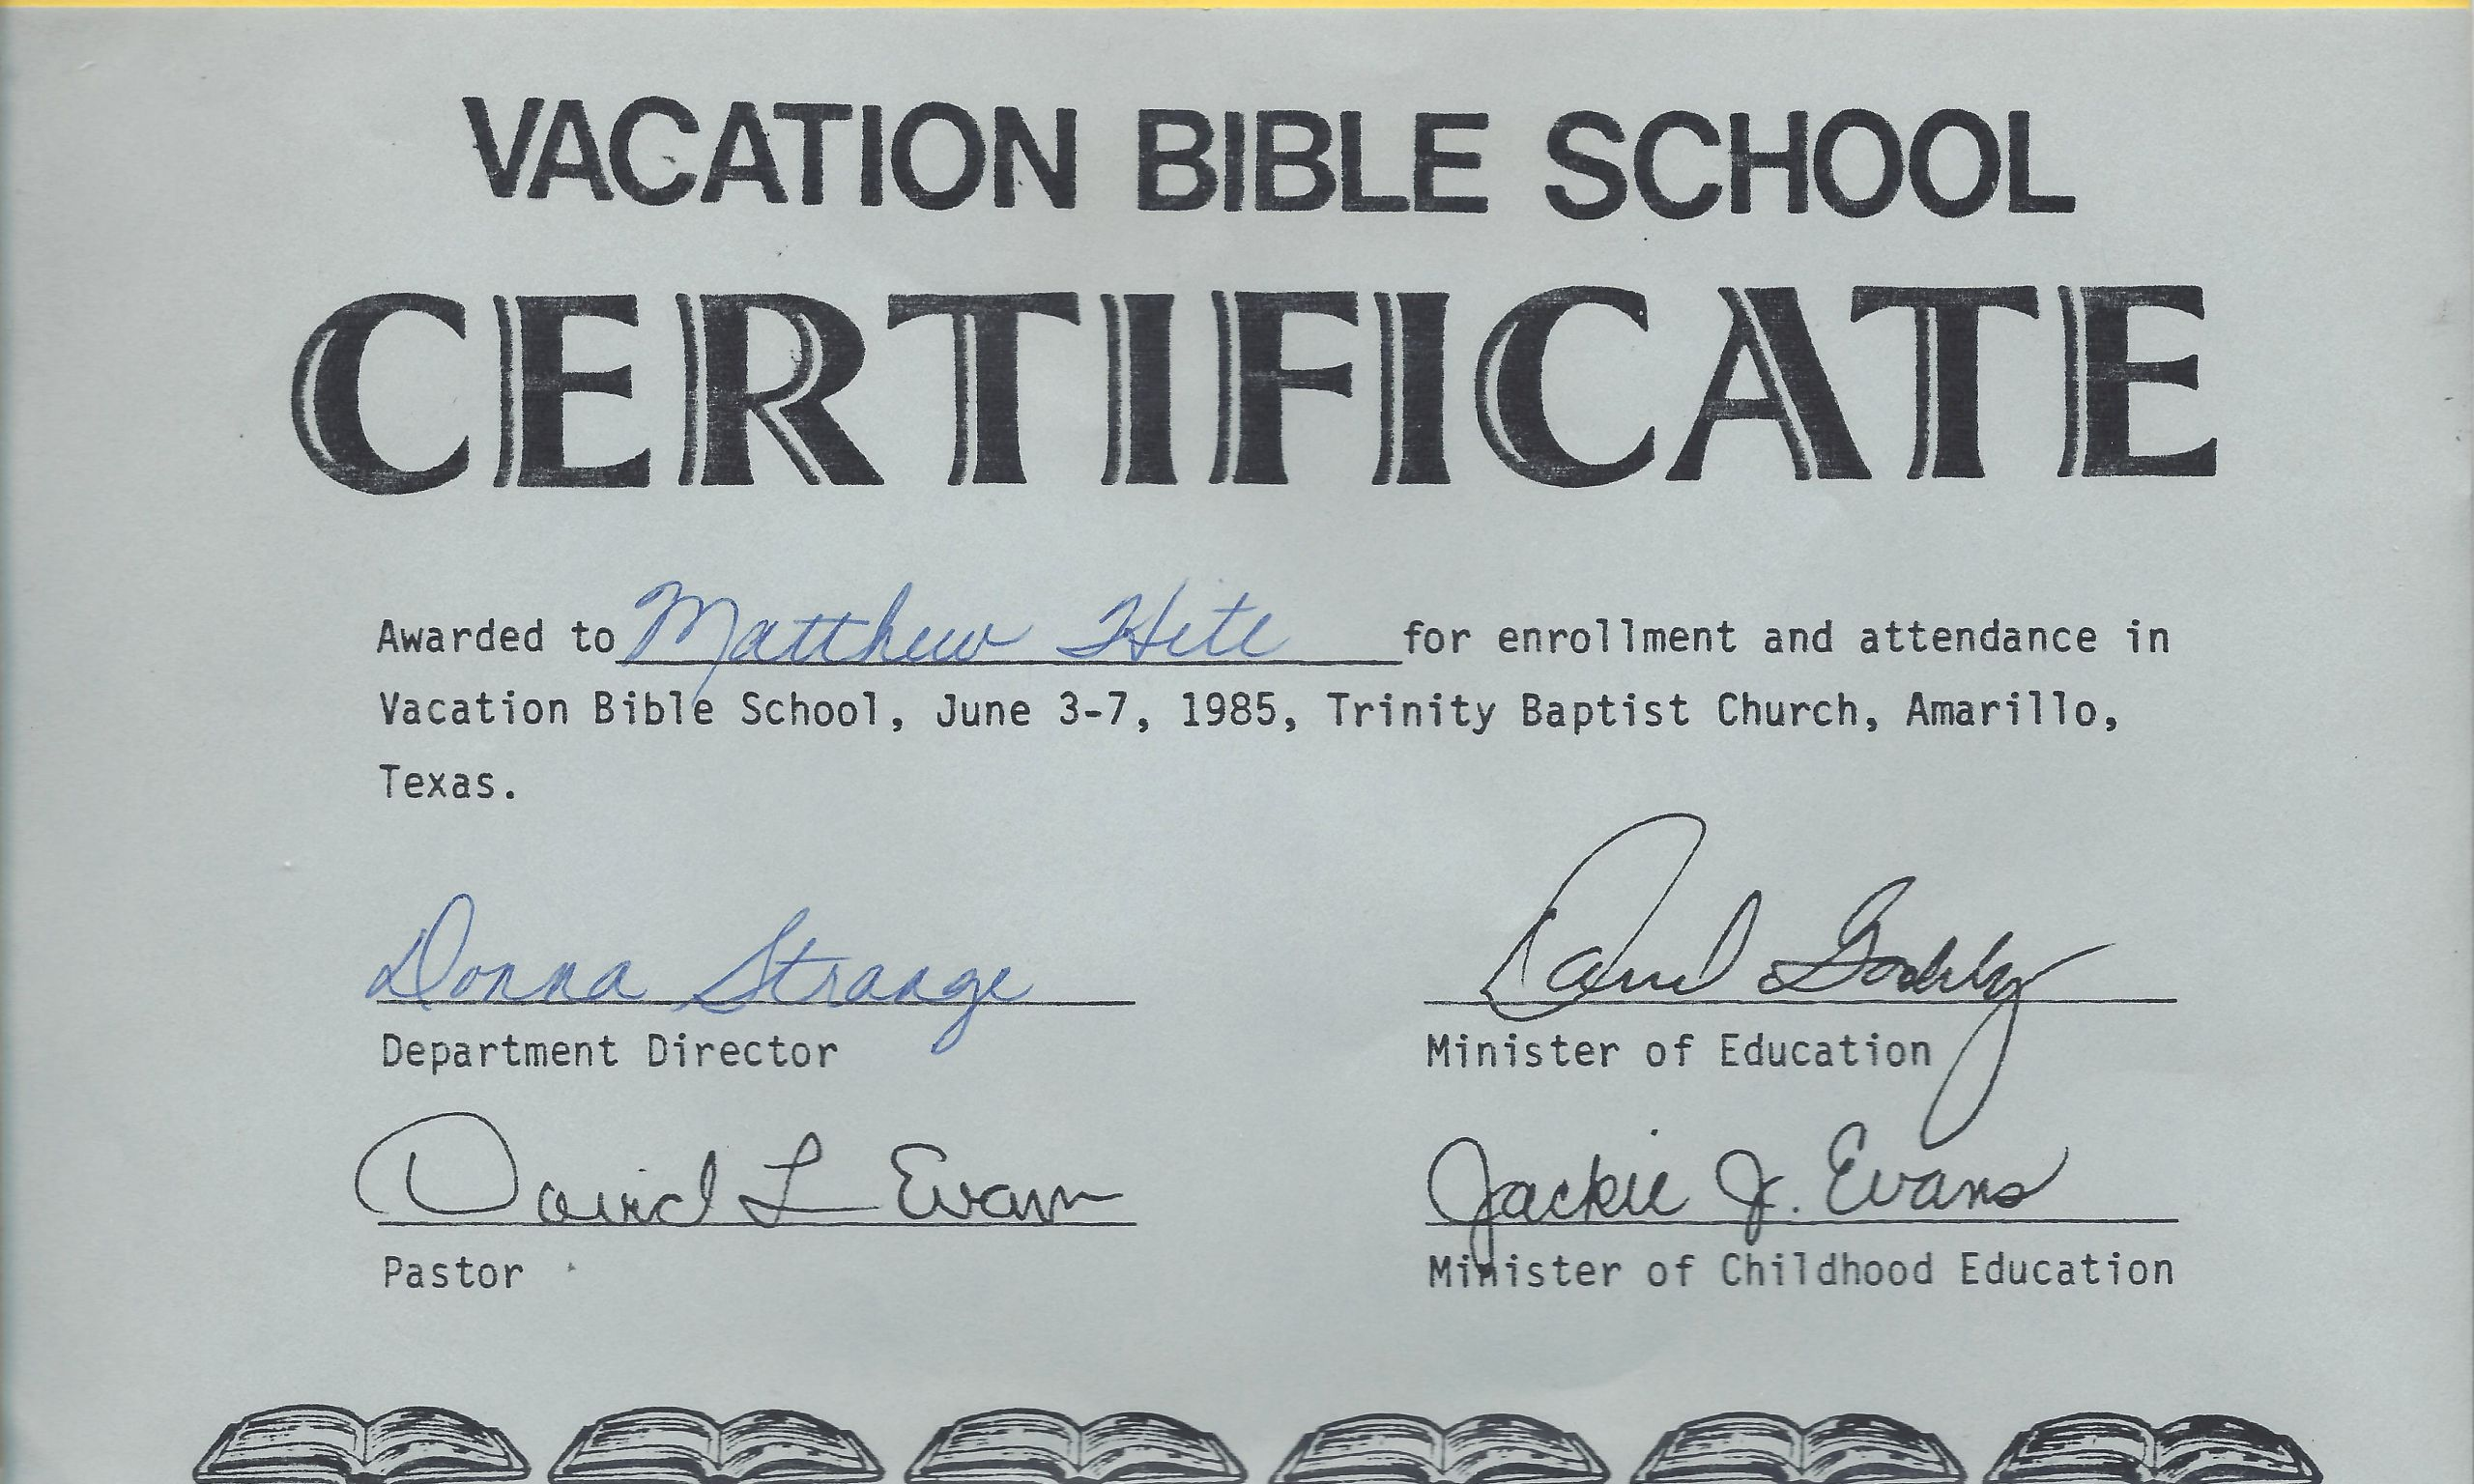 Printable Vacation Bible School Certificates Inspirational Vacation Bible School – Matthew Walter Hite Amarillo Texas